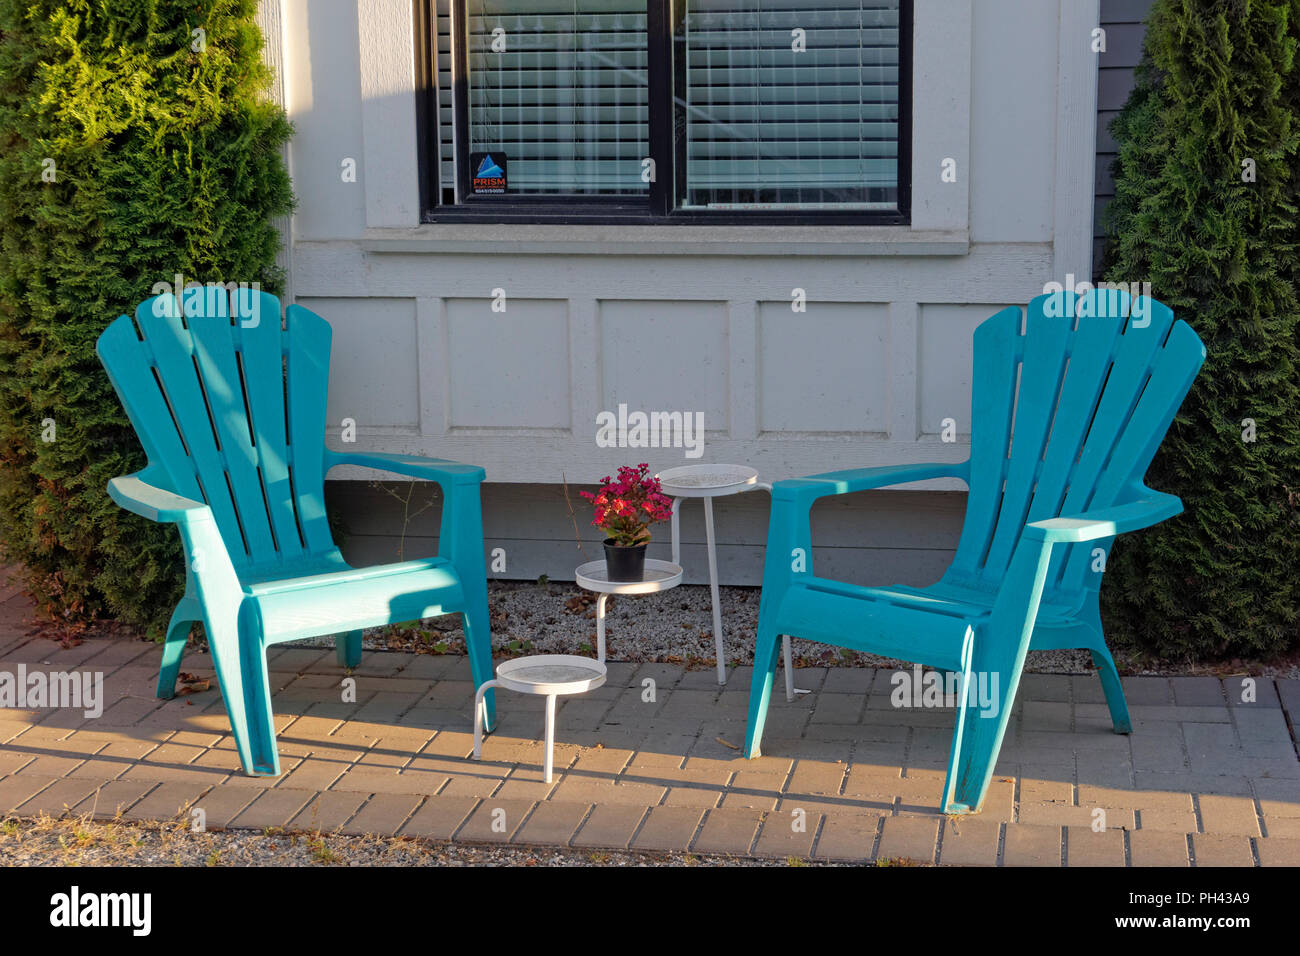 Two Plastic Adirondack Chairs On A Summer Patio Outside A House